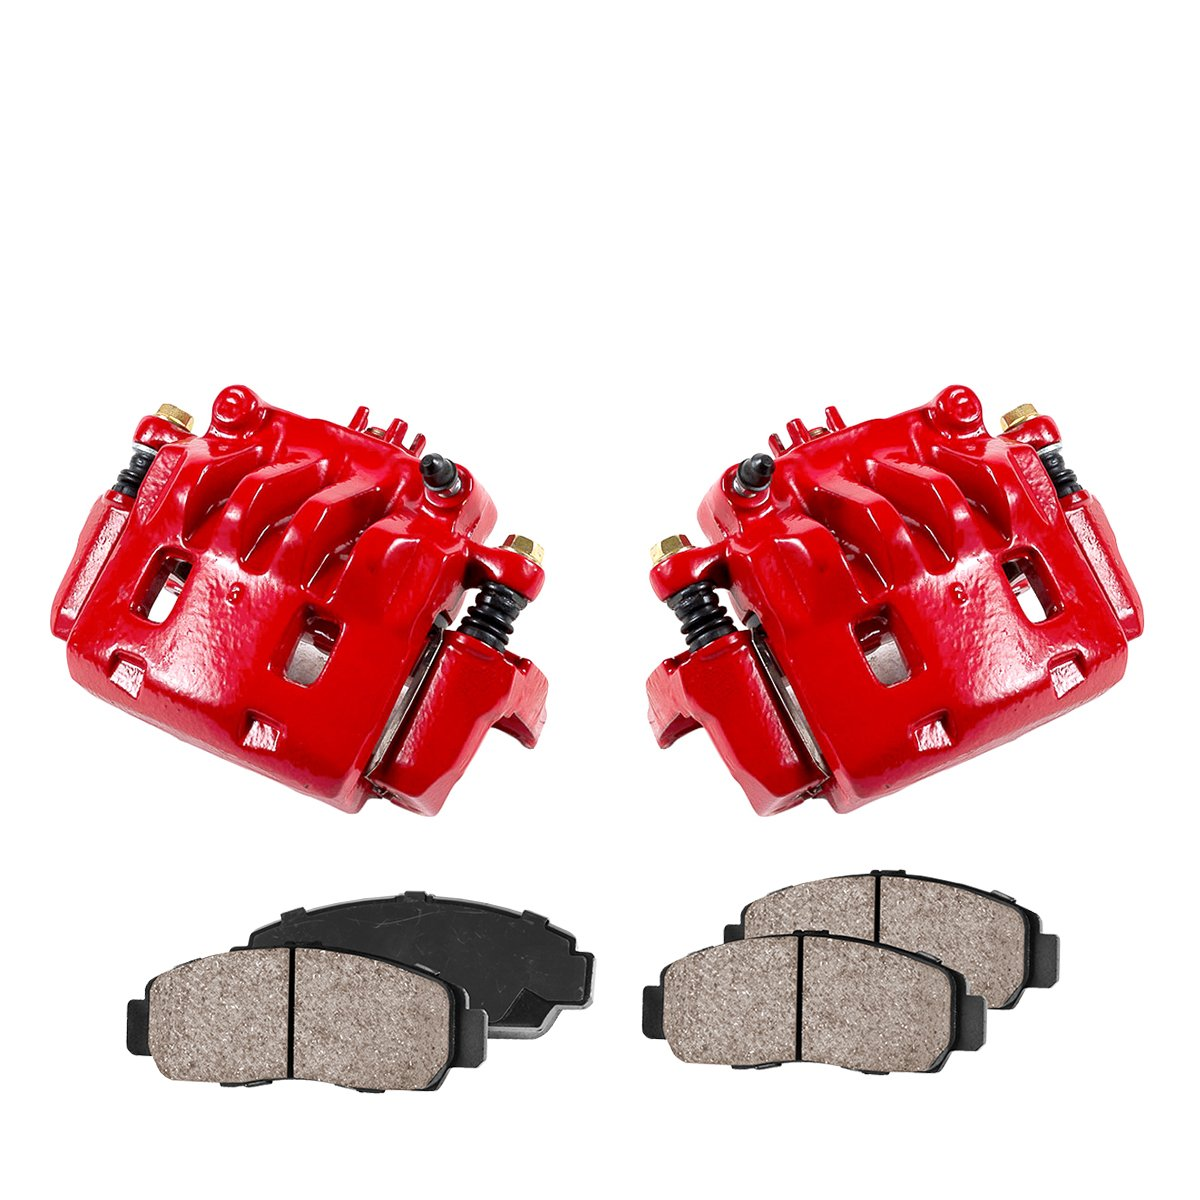 CK00366 [2] FRONT Performance Loaded Powder Coated Red Caliper Assembly + Quiet Low Dust Ceramic Brake Pads Callahan Brake Parts